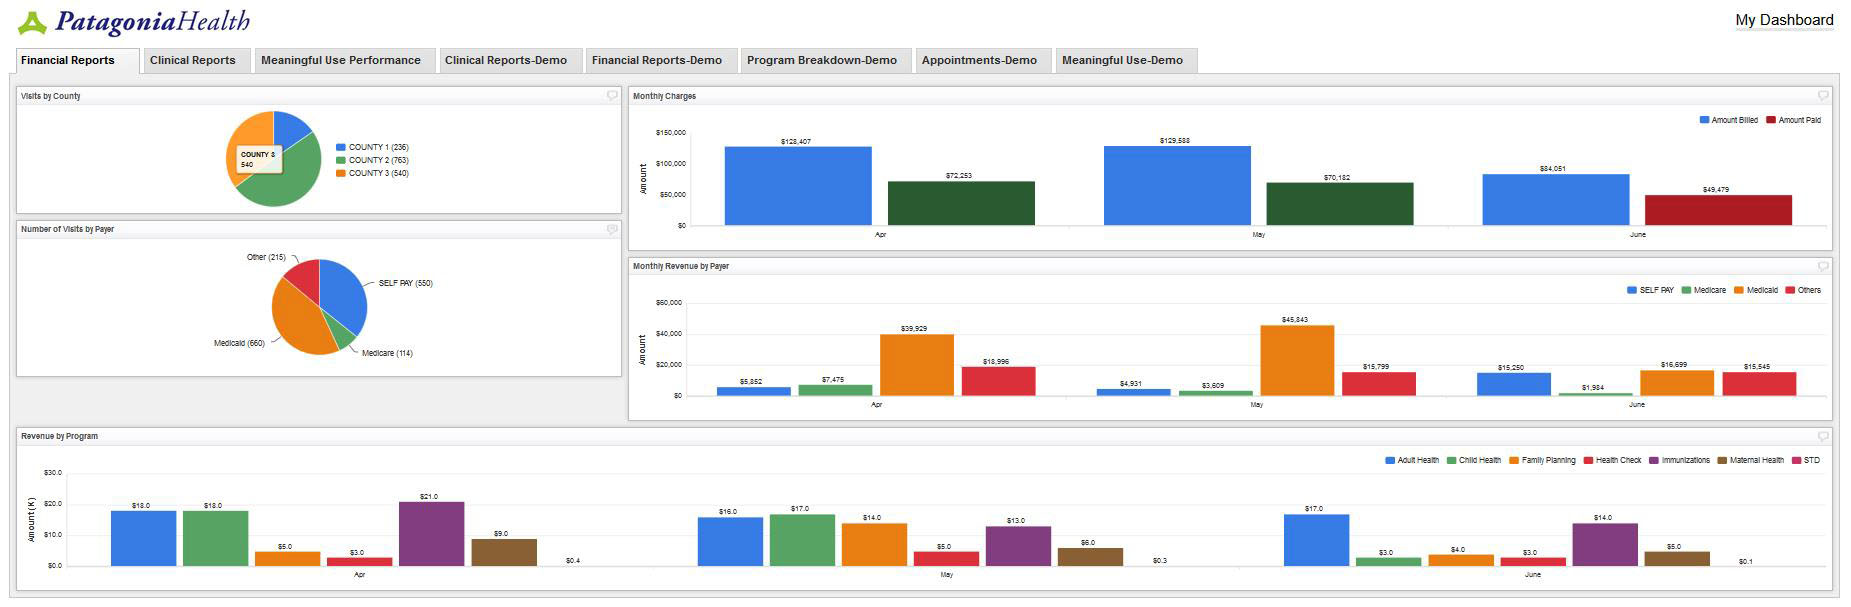 EHR Reporting Dashboard App Financial Reports View